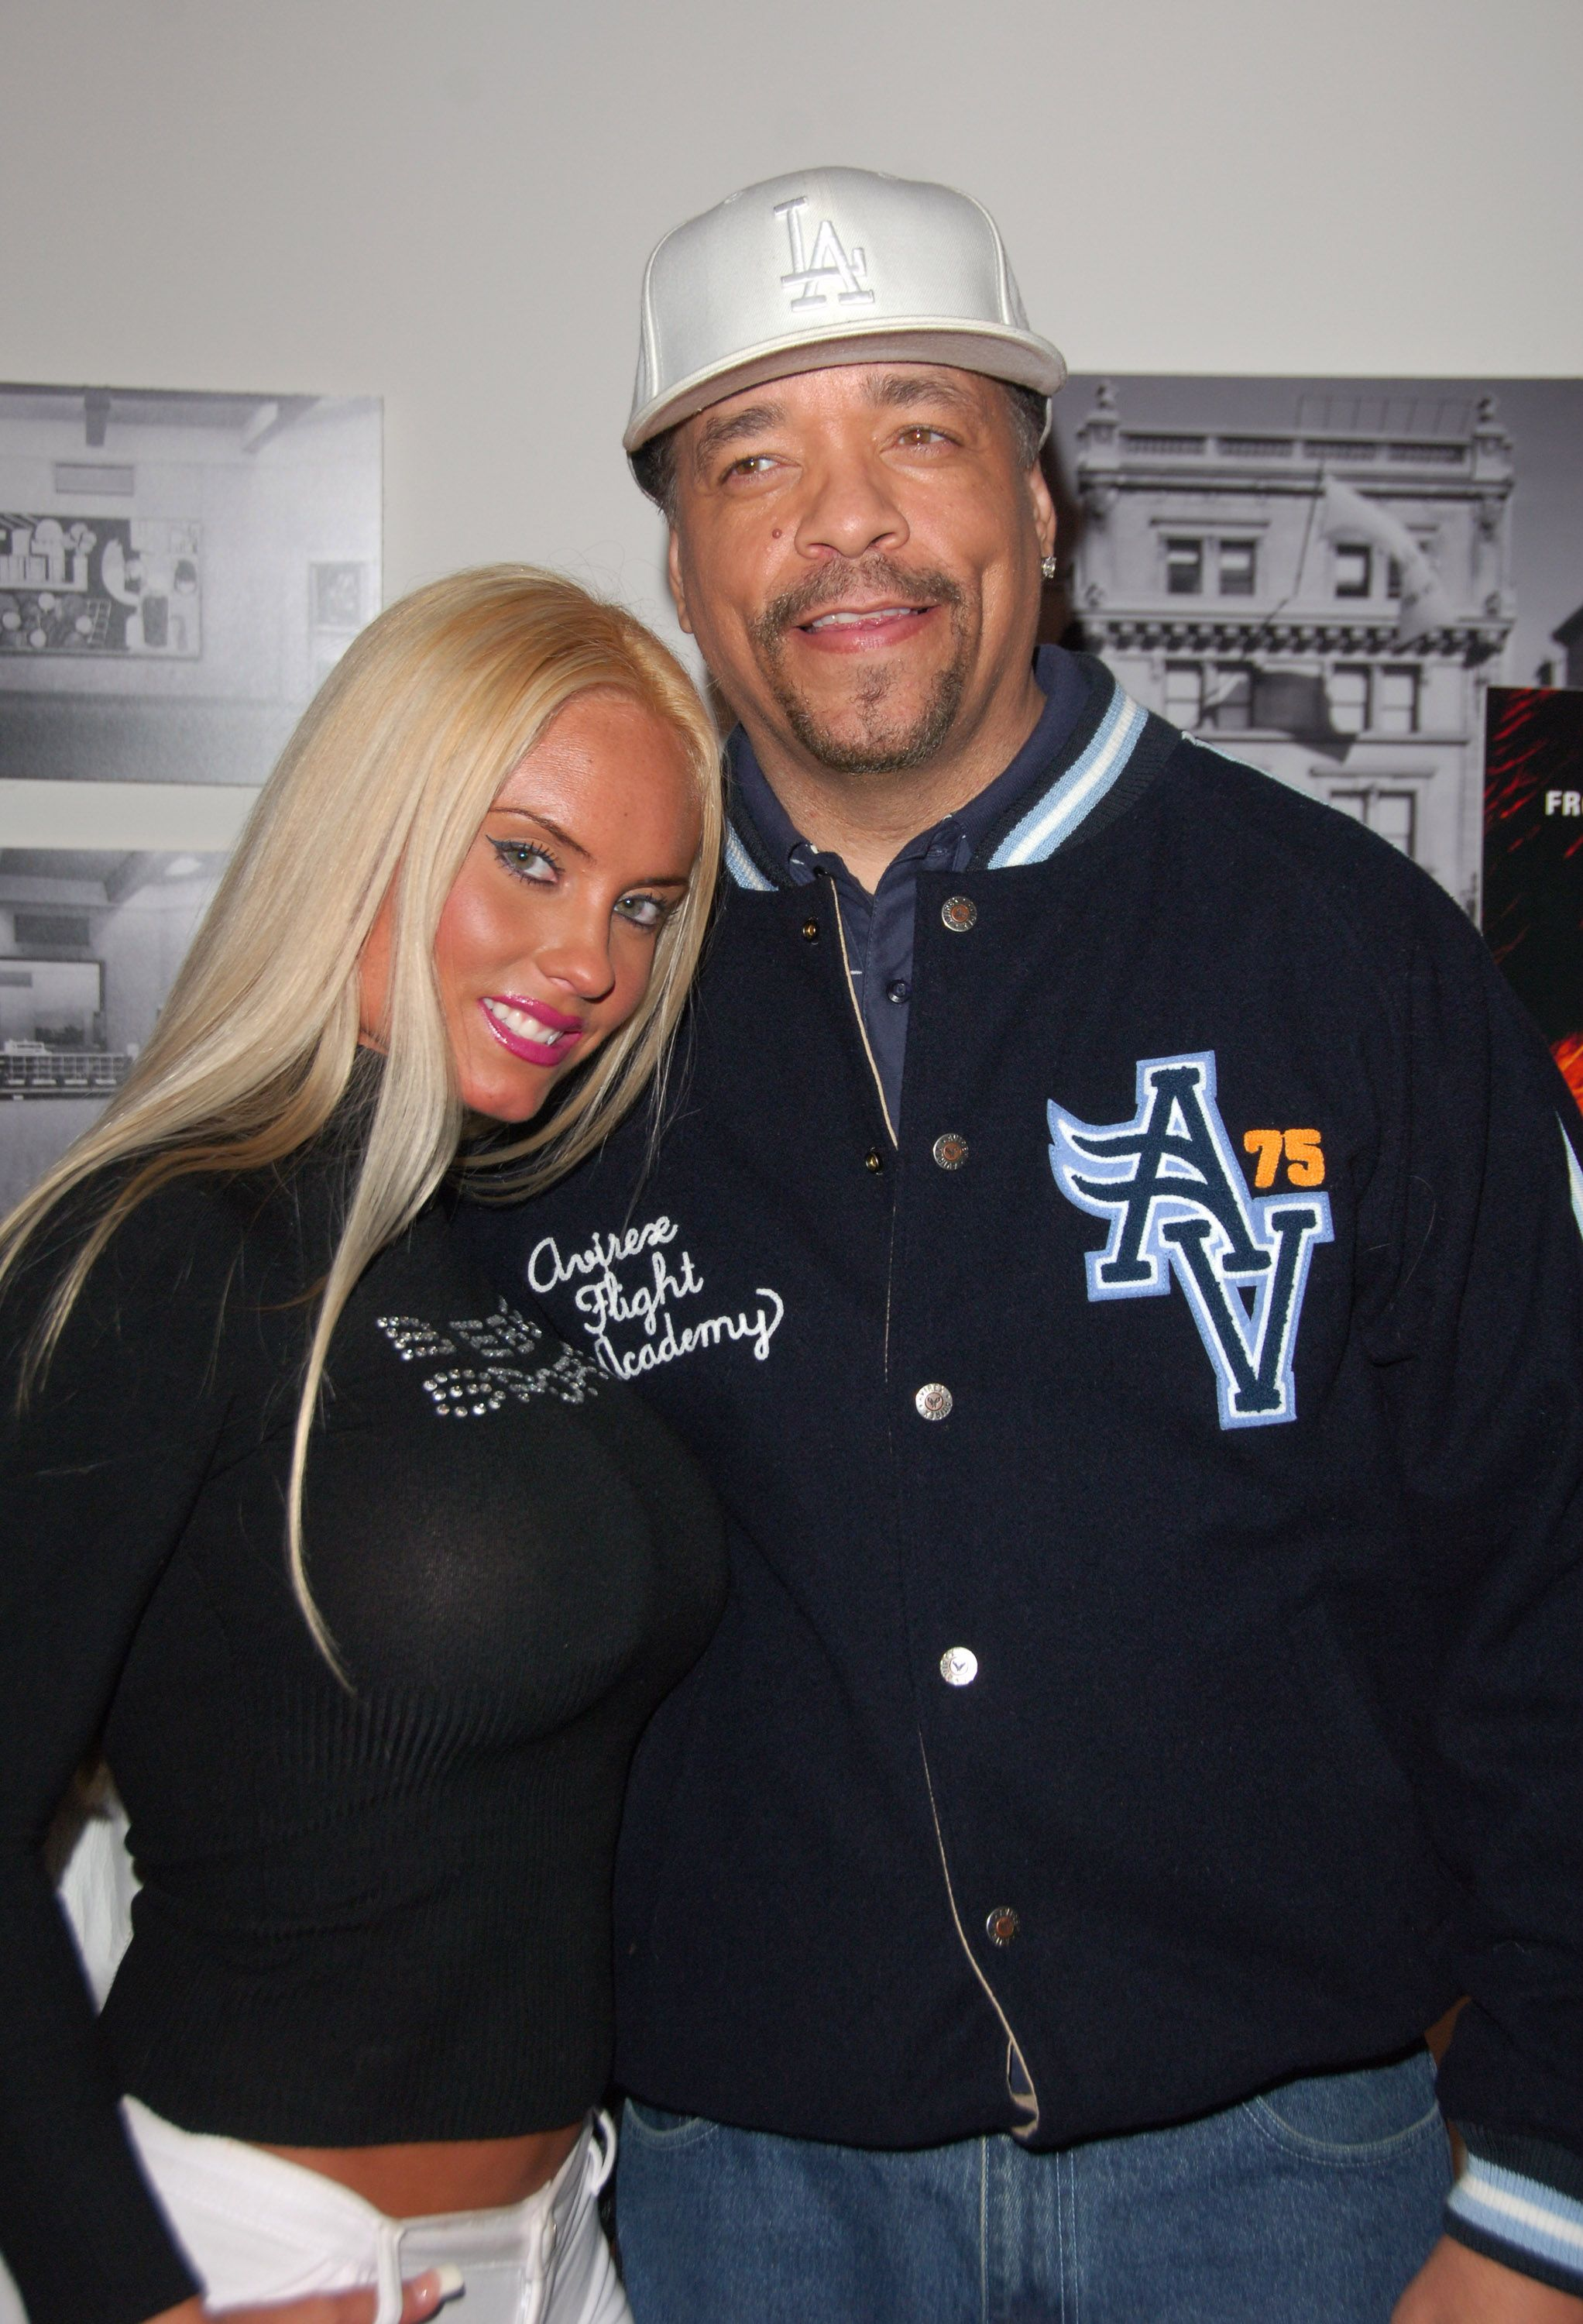 """Coco Austin and Ice-T at the """"Blood Diamond"""" New York City screening on November 30, 2006 at MoMa in New York City, New York, United States.   Source: Getty Images"""